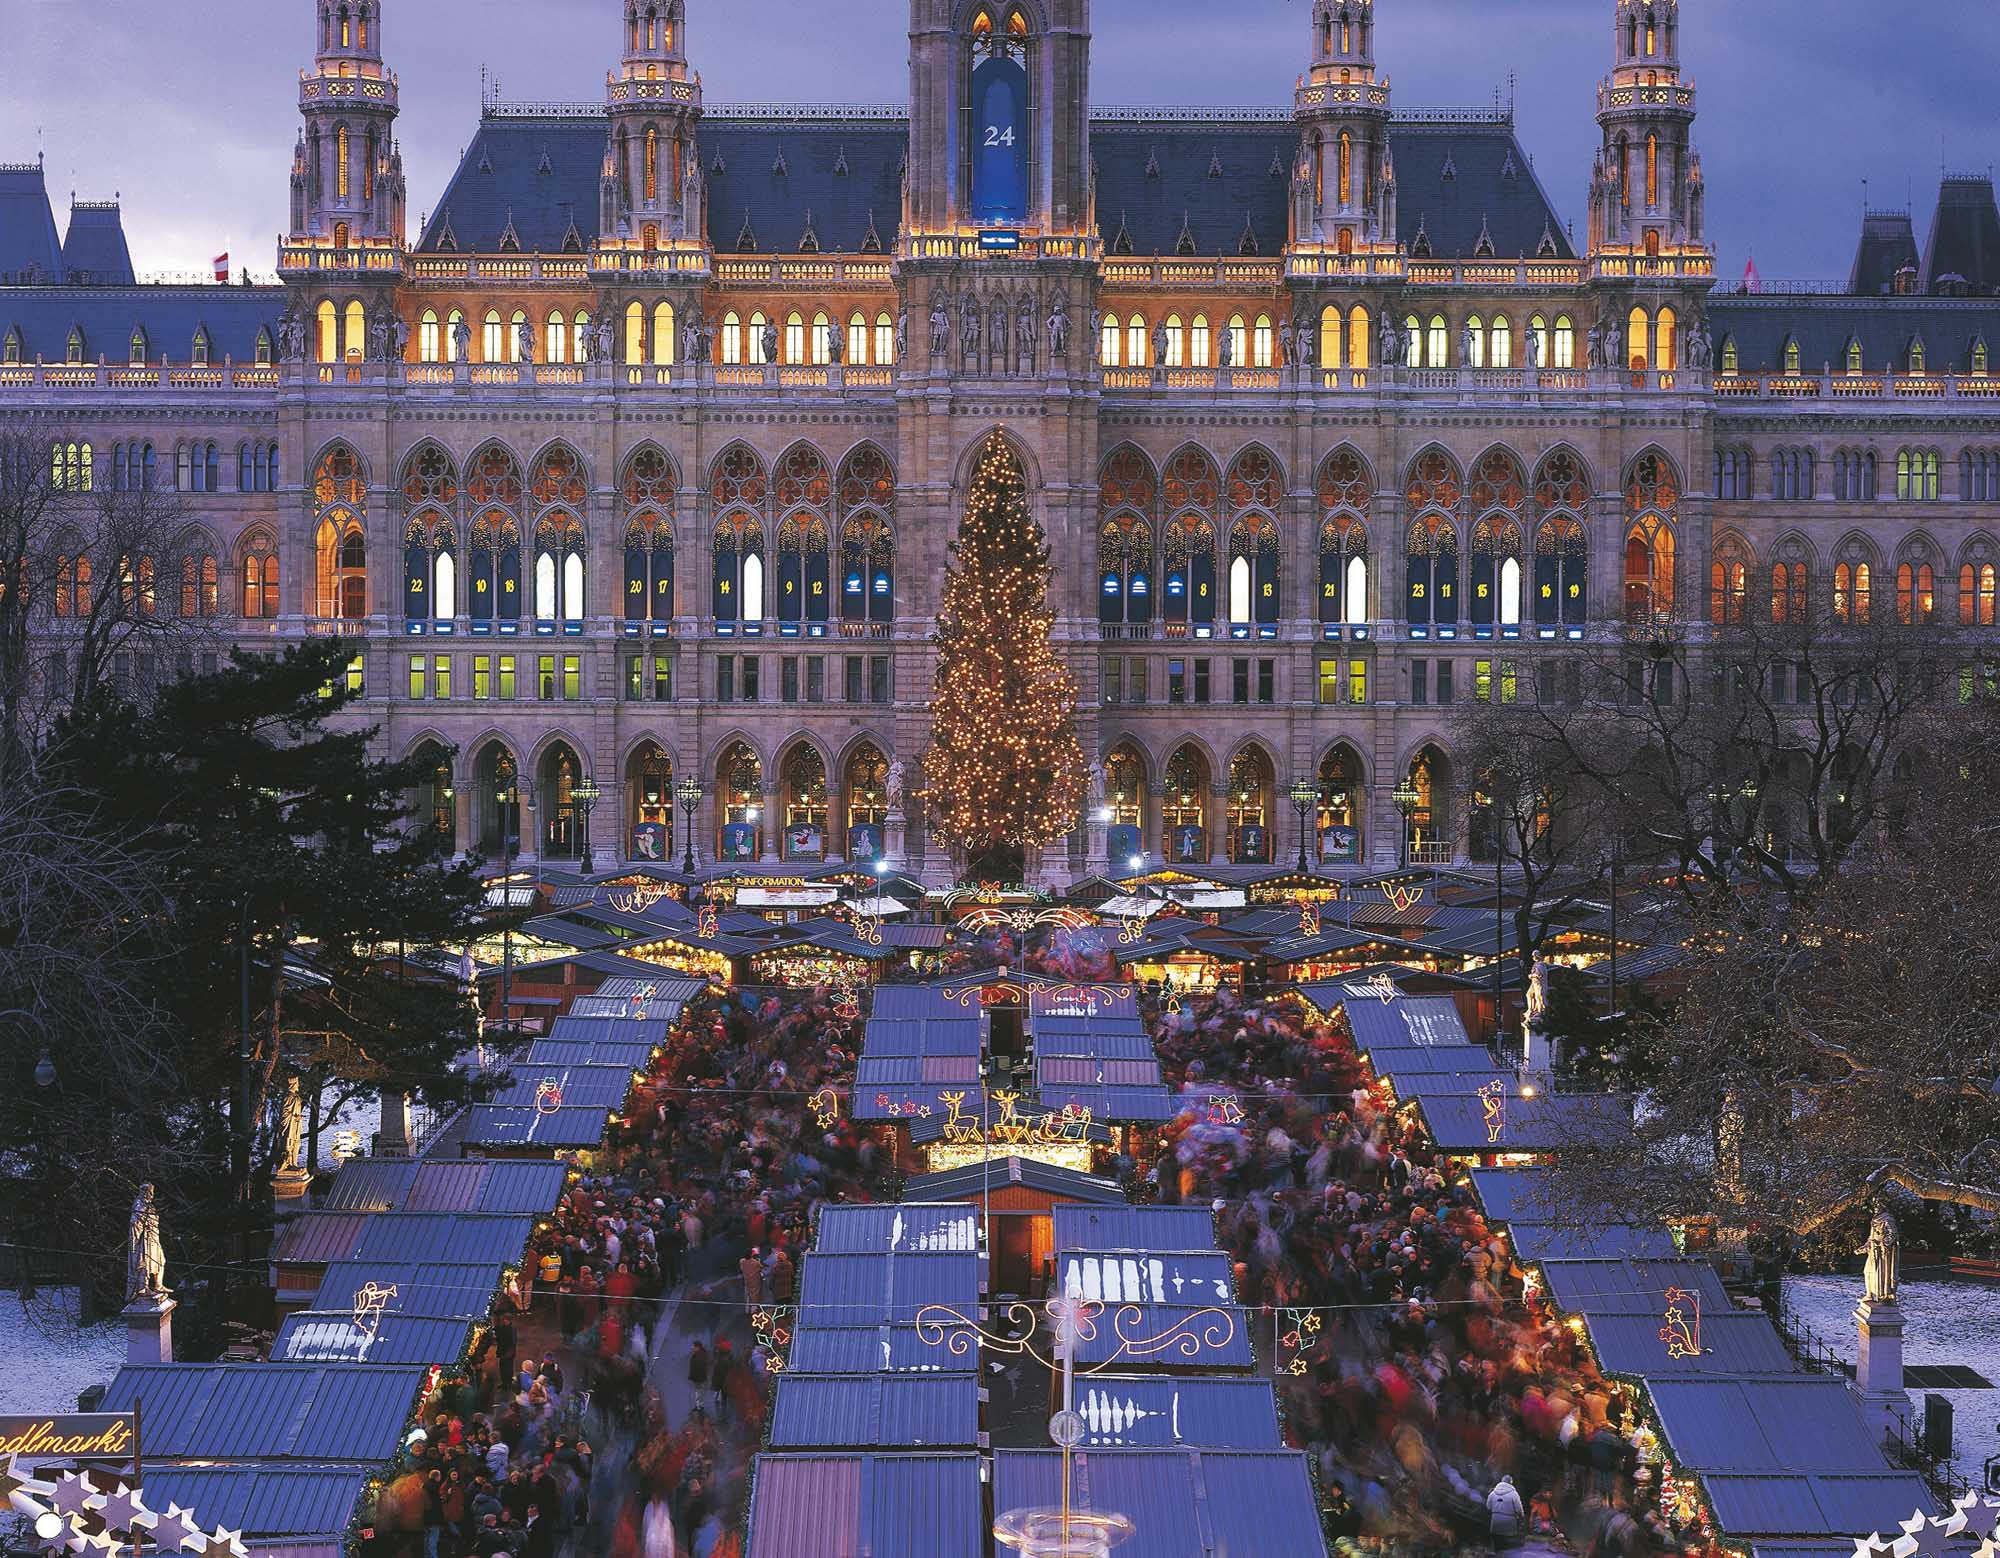 Christmas market in Town Hall Square, Vienna, Austria.